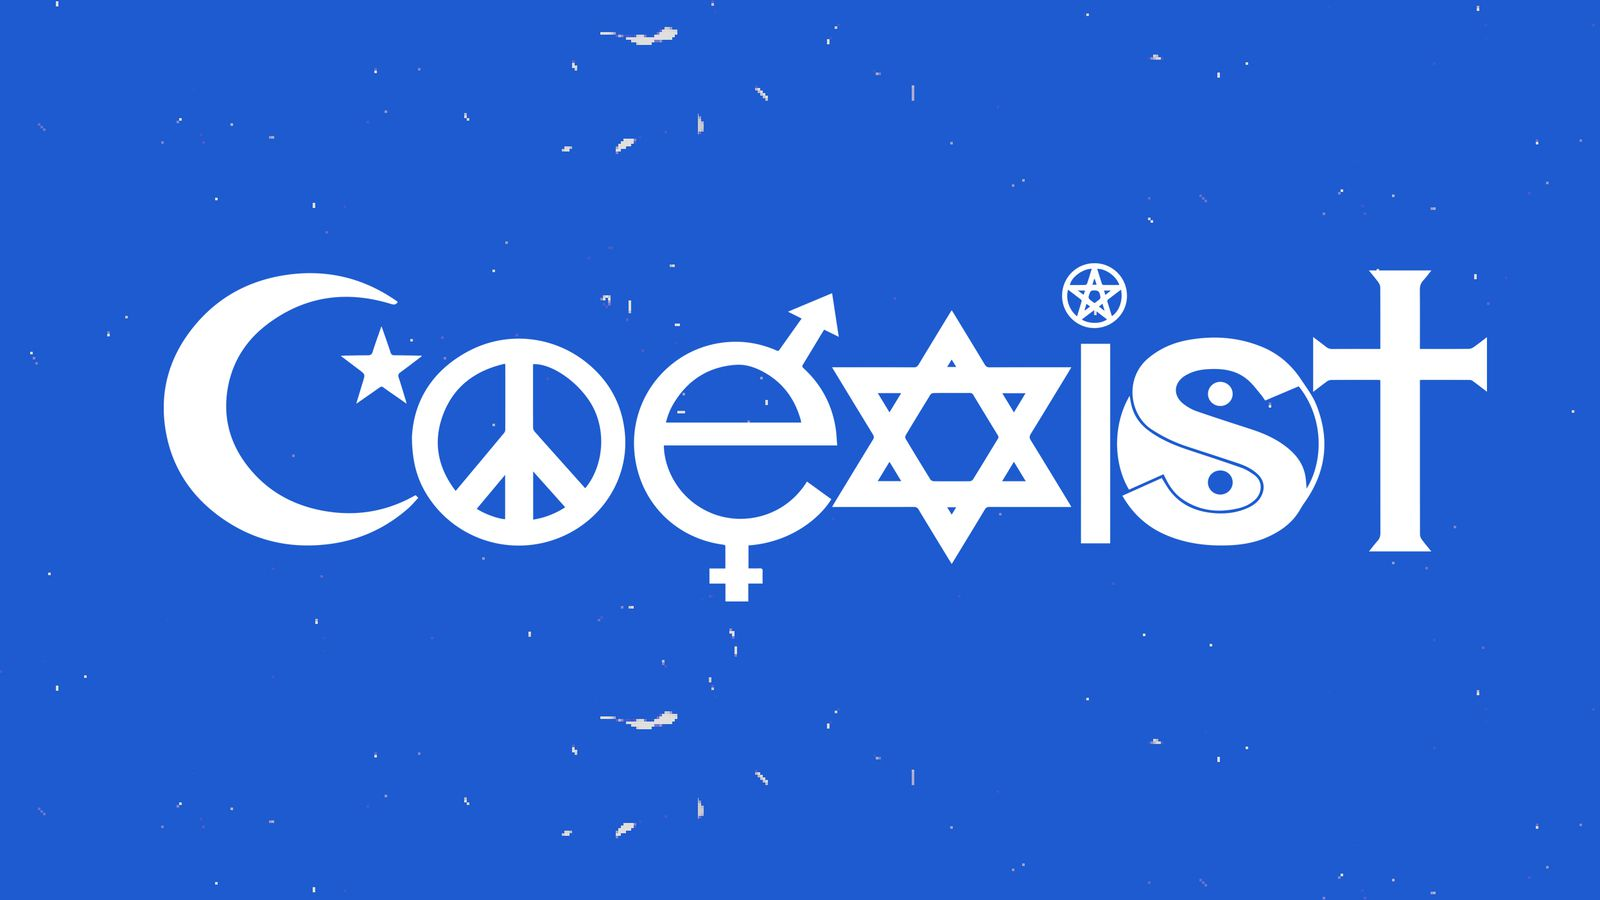 The big fight over coexist vox